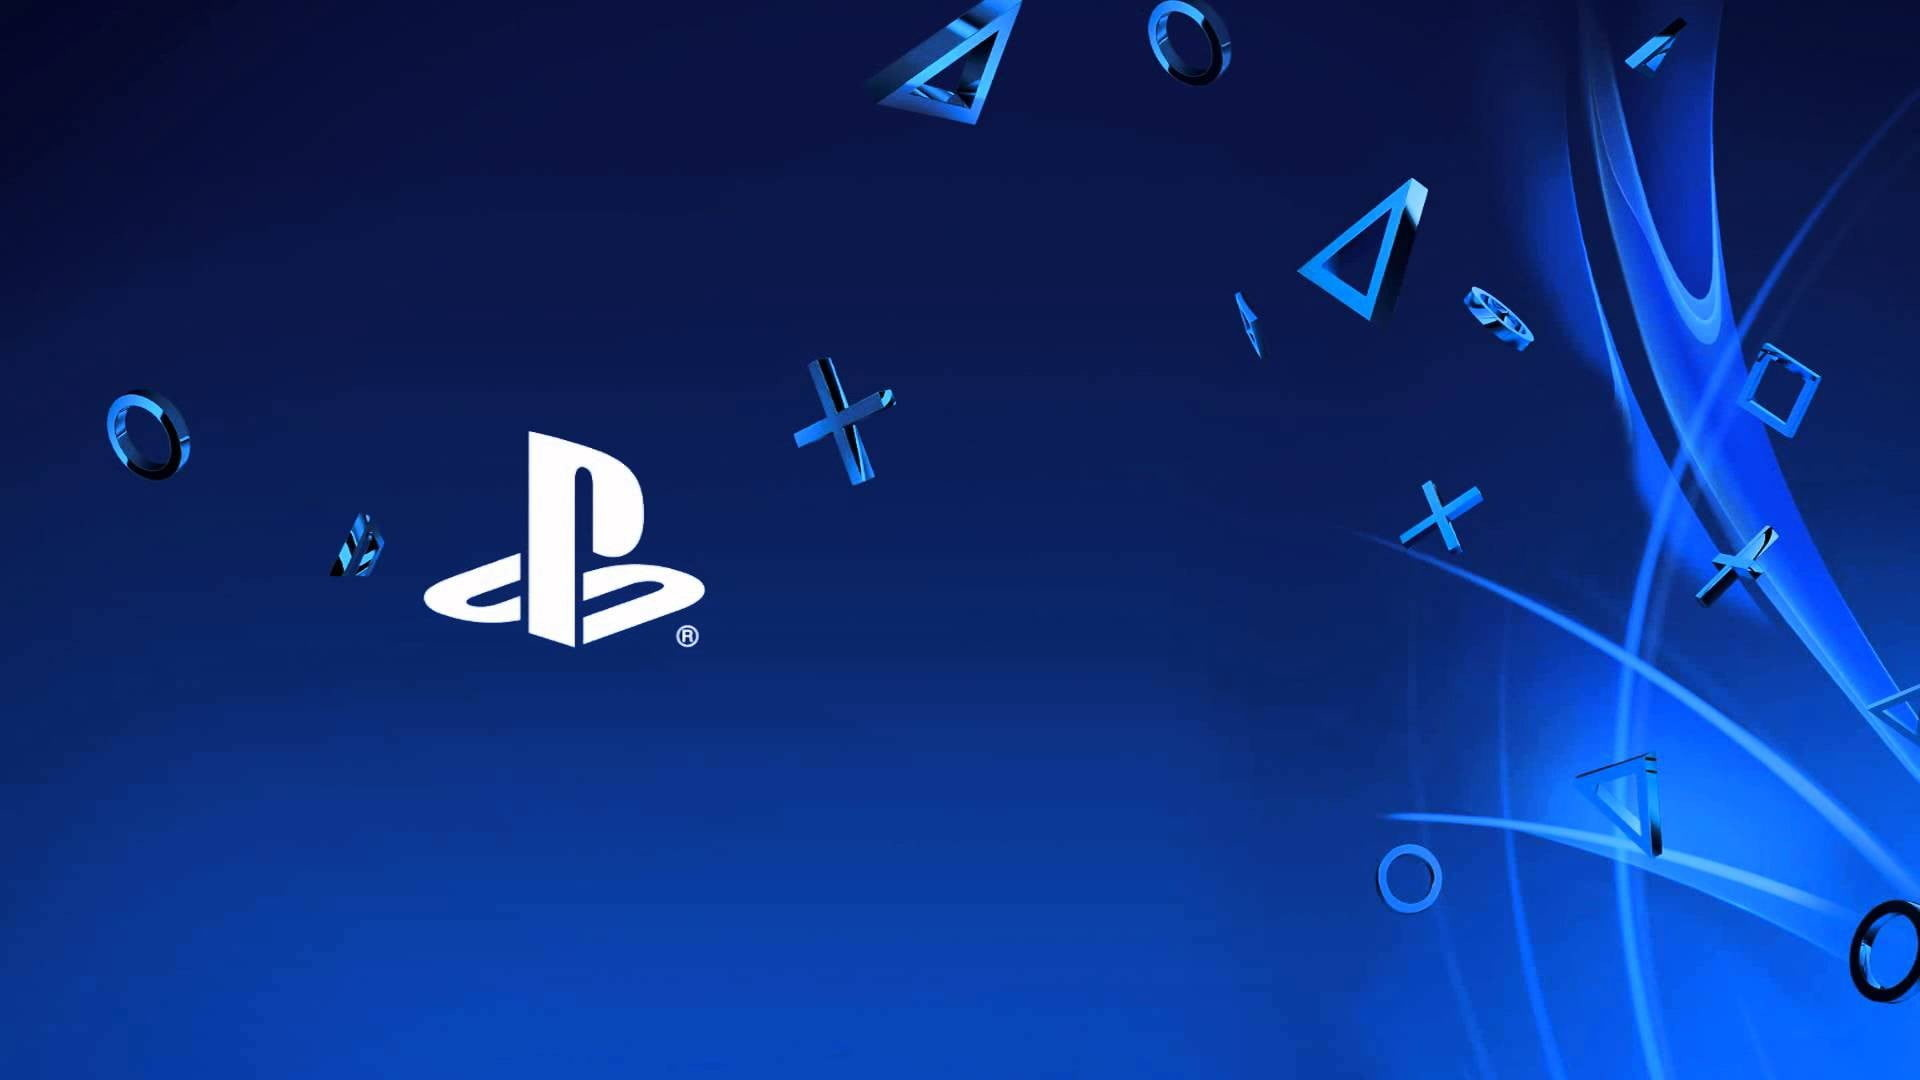 sony playstation 4 wallpapers (68+ background pictures)